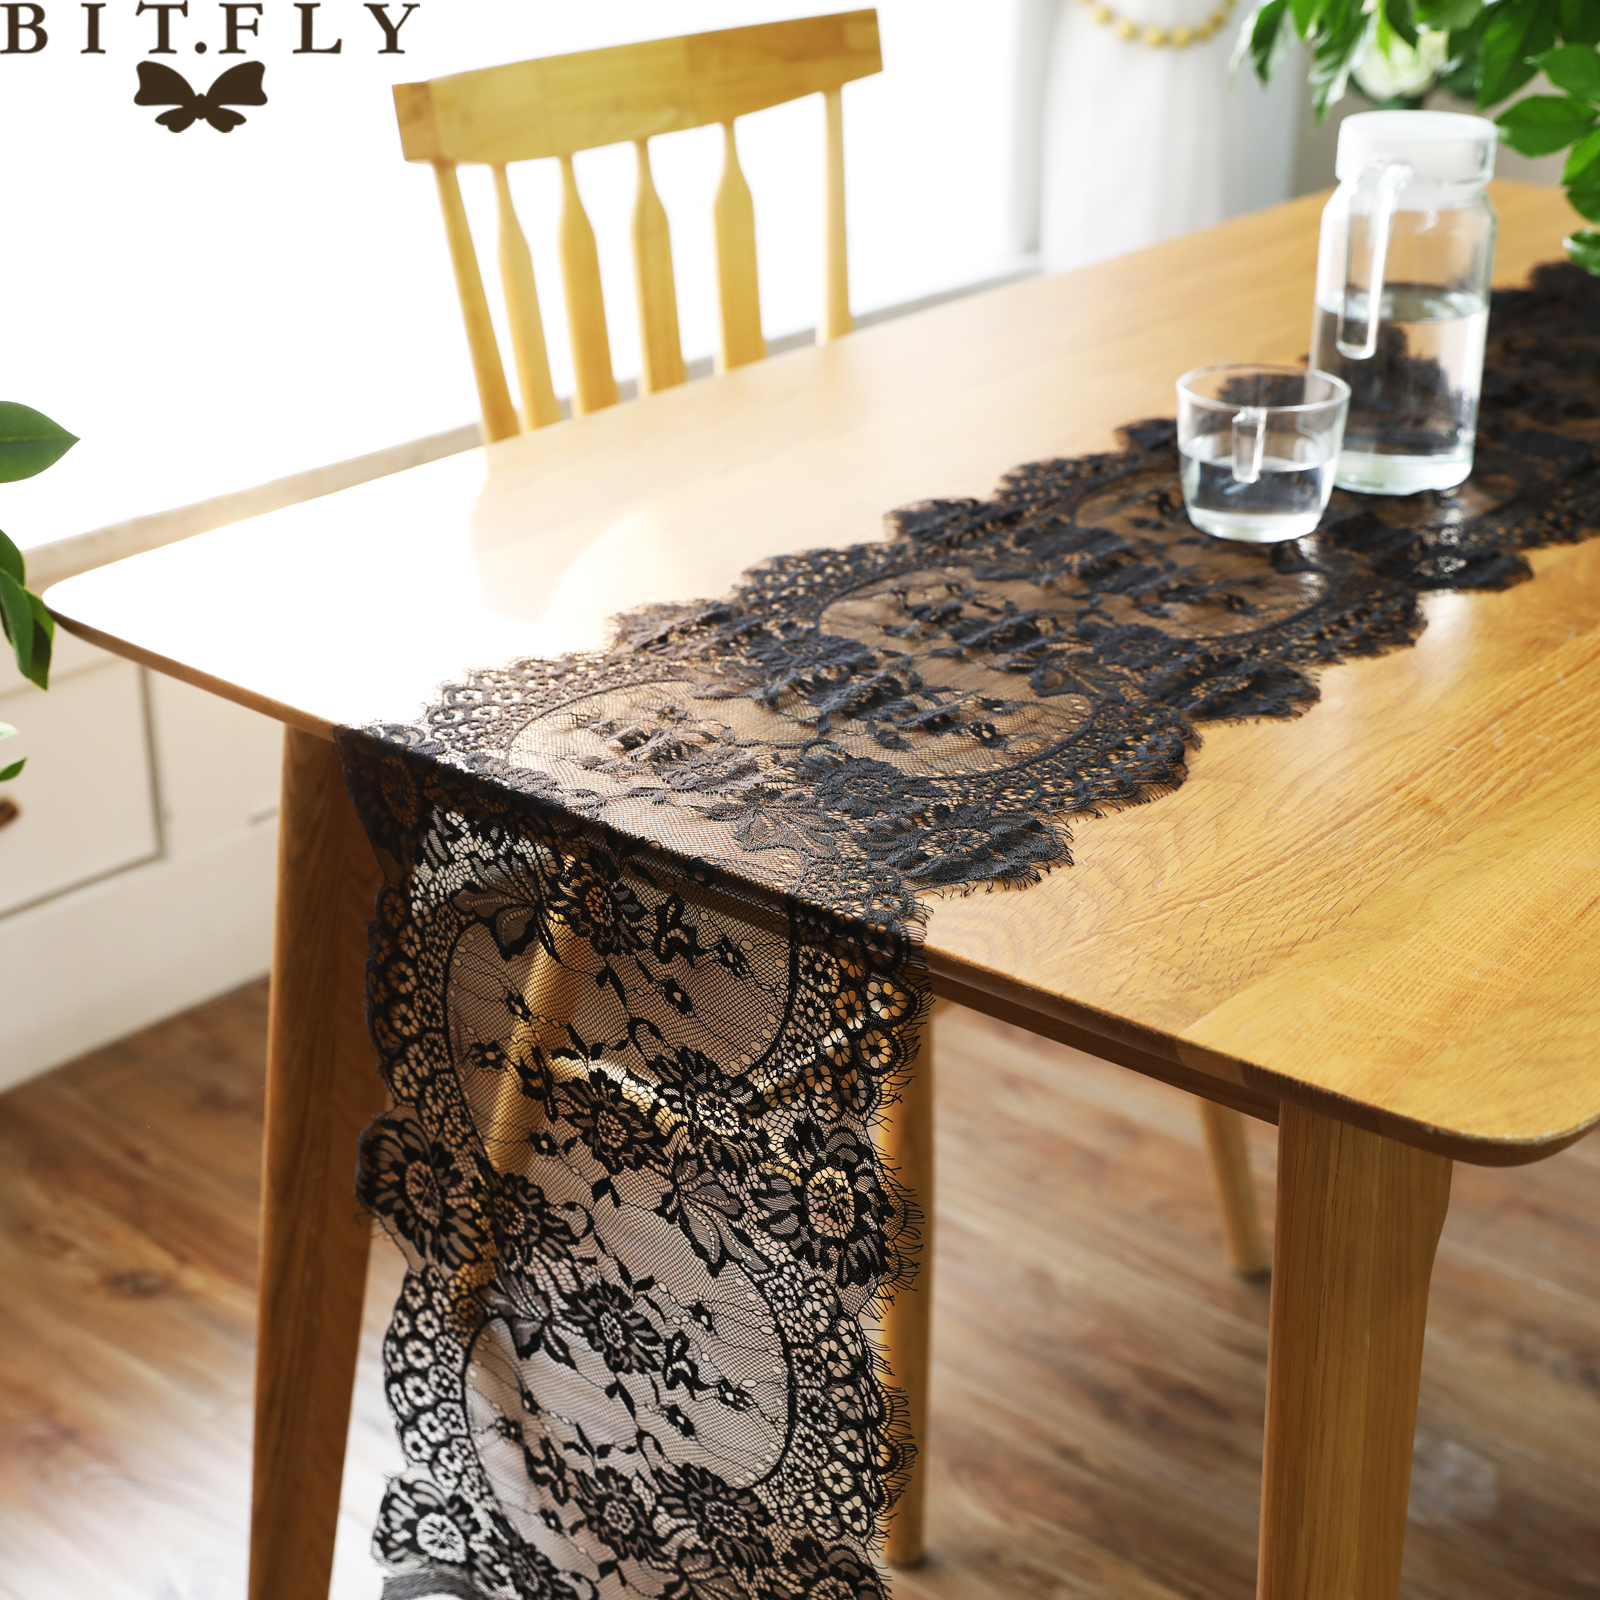 White Black Floral Lace Eyelash Table Runner Dinner Table Cover Decoration For Birthday Wedding Christmas Festival Party Supply